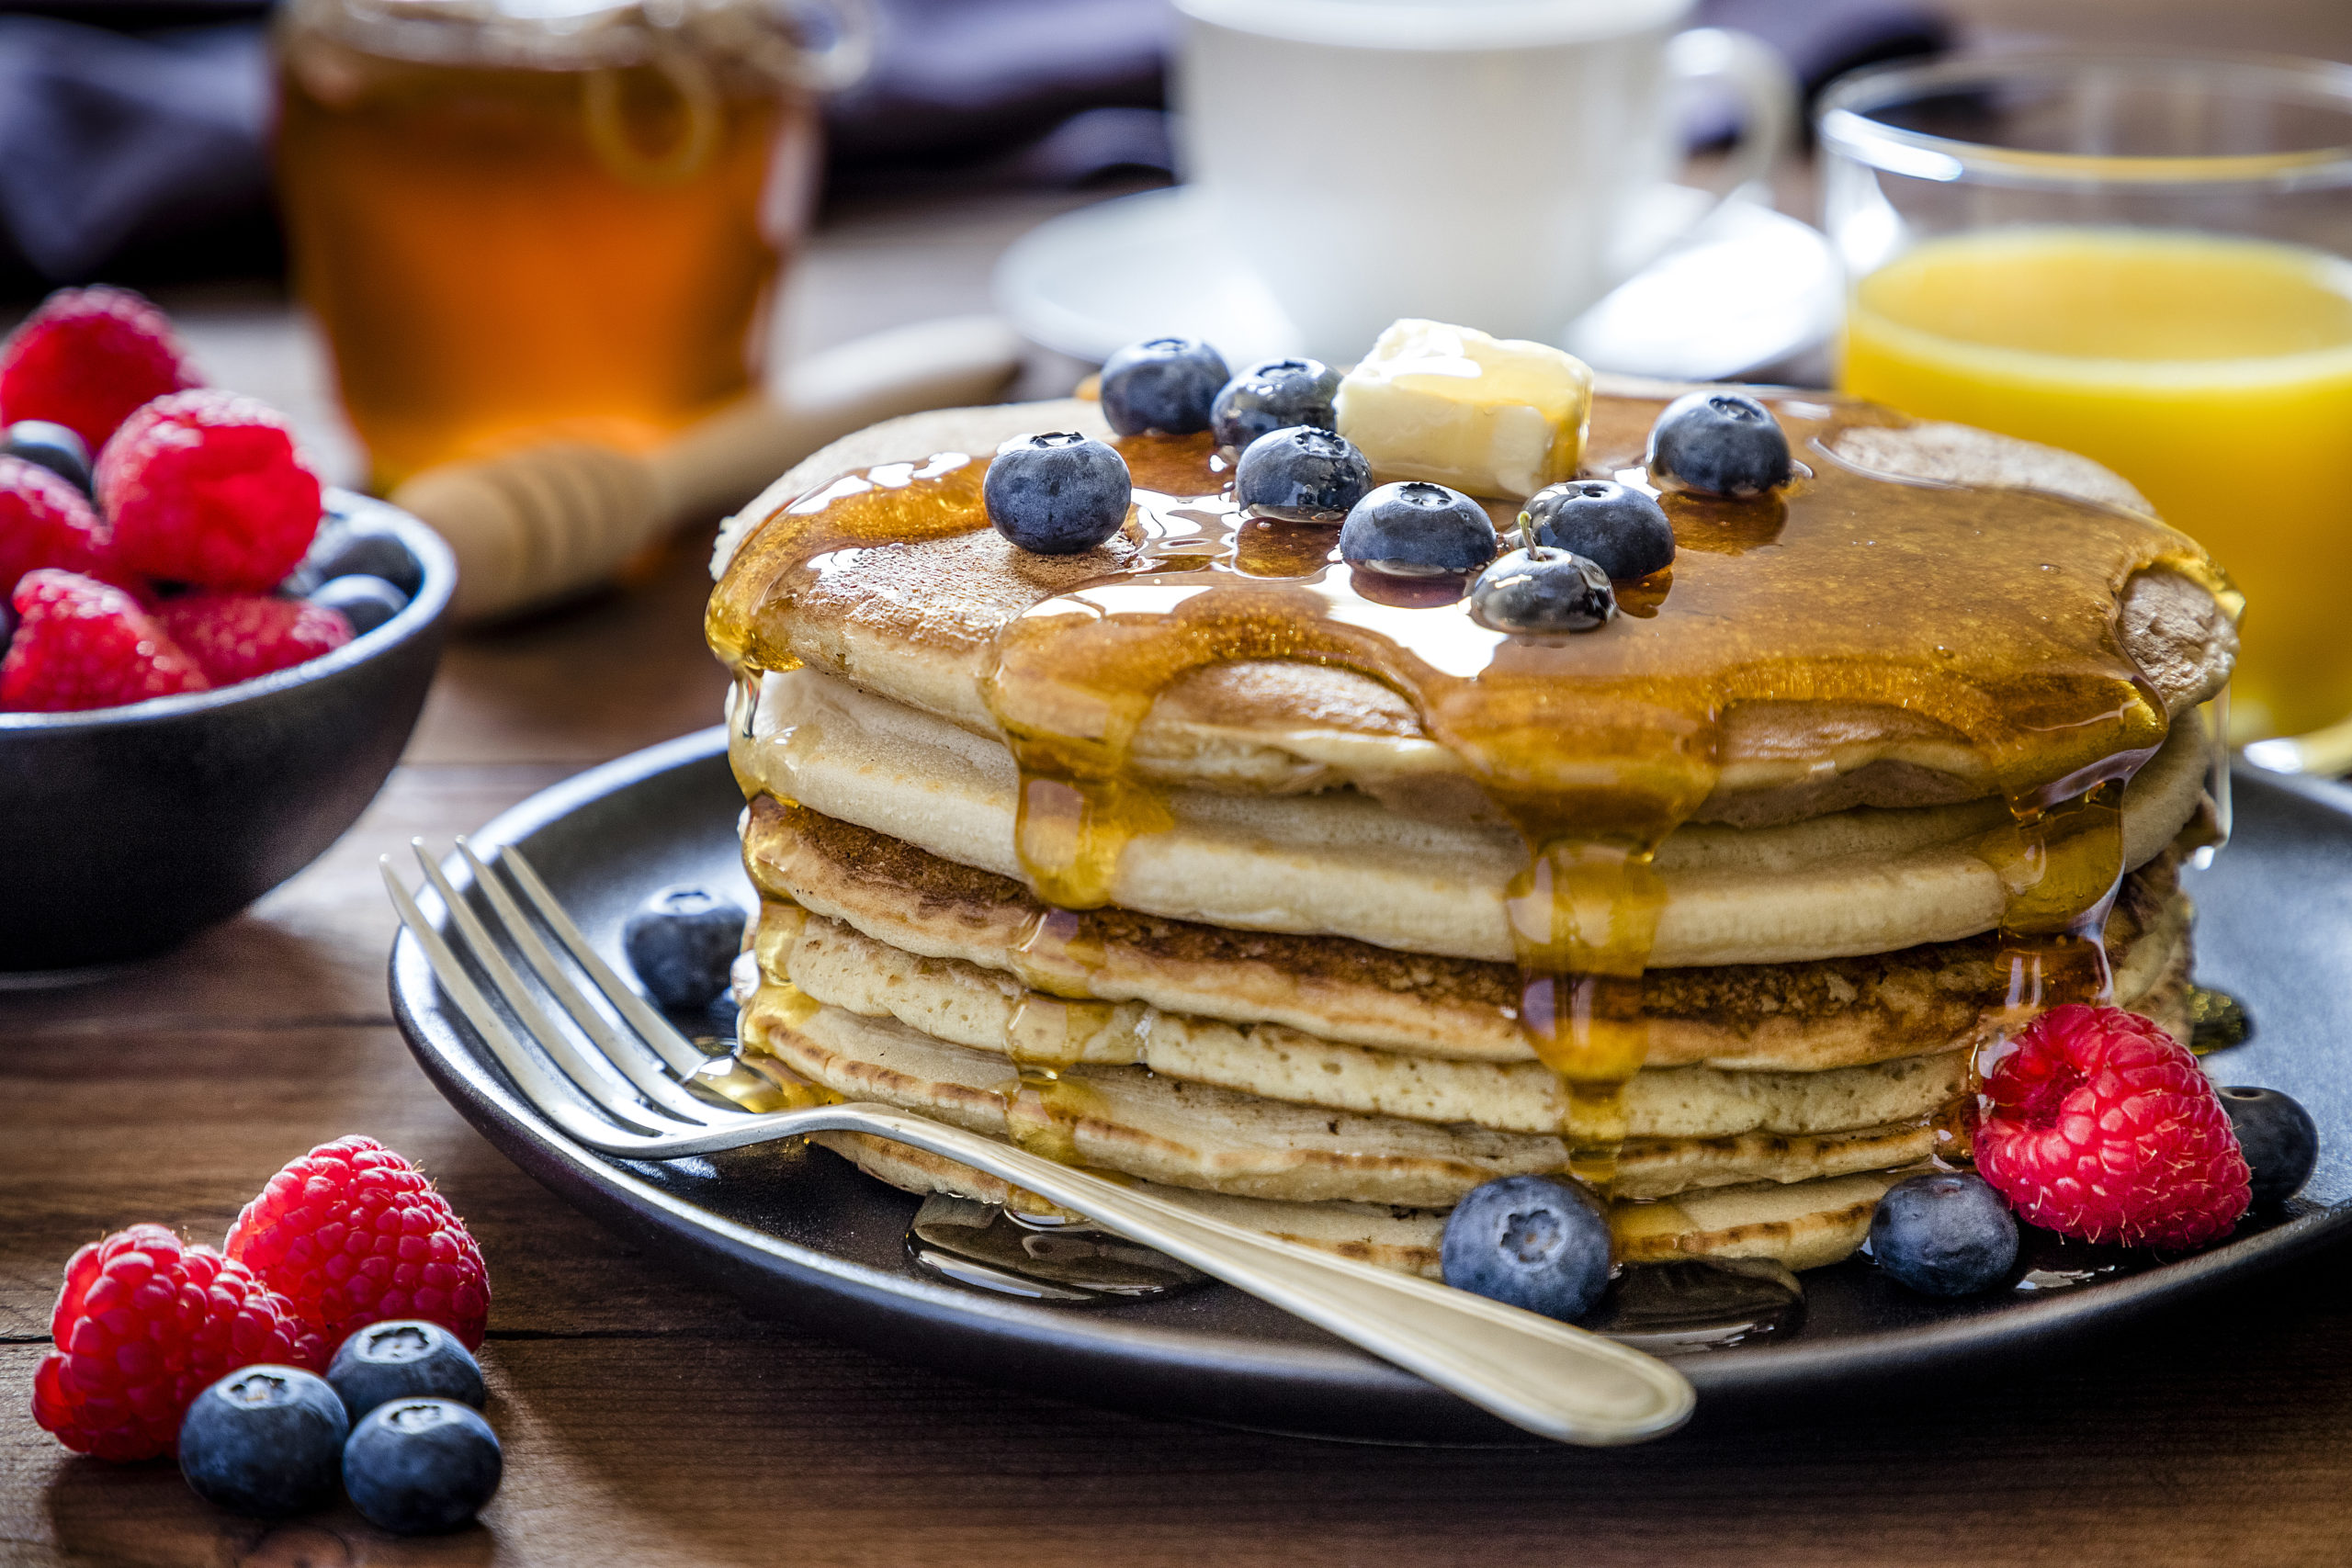 Shortstack of pancakes with berries and maple syrup | pancakes in Arlington, VA